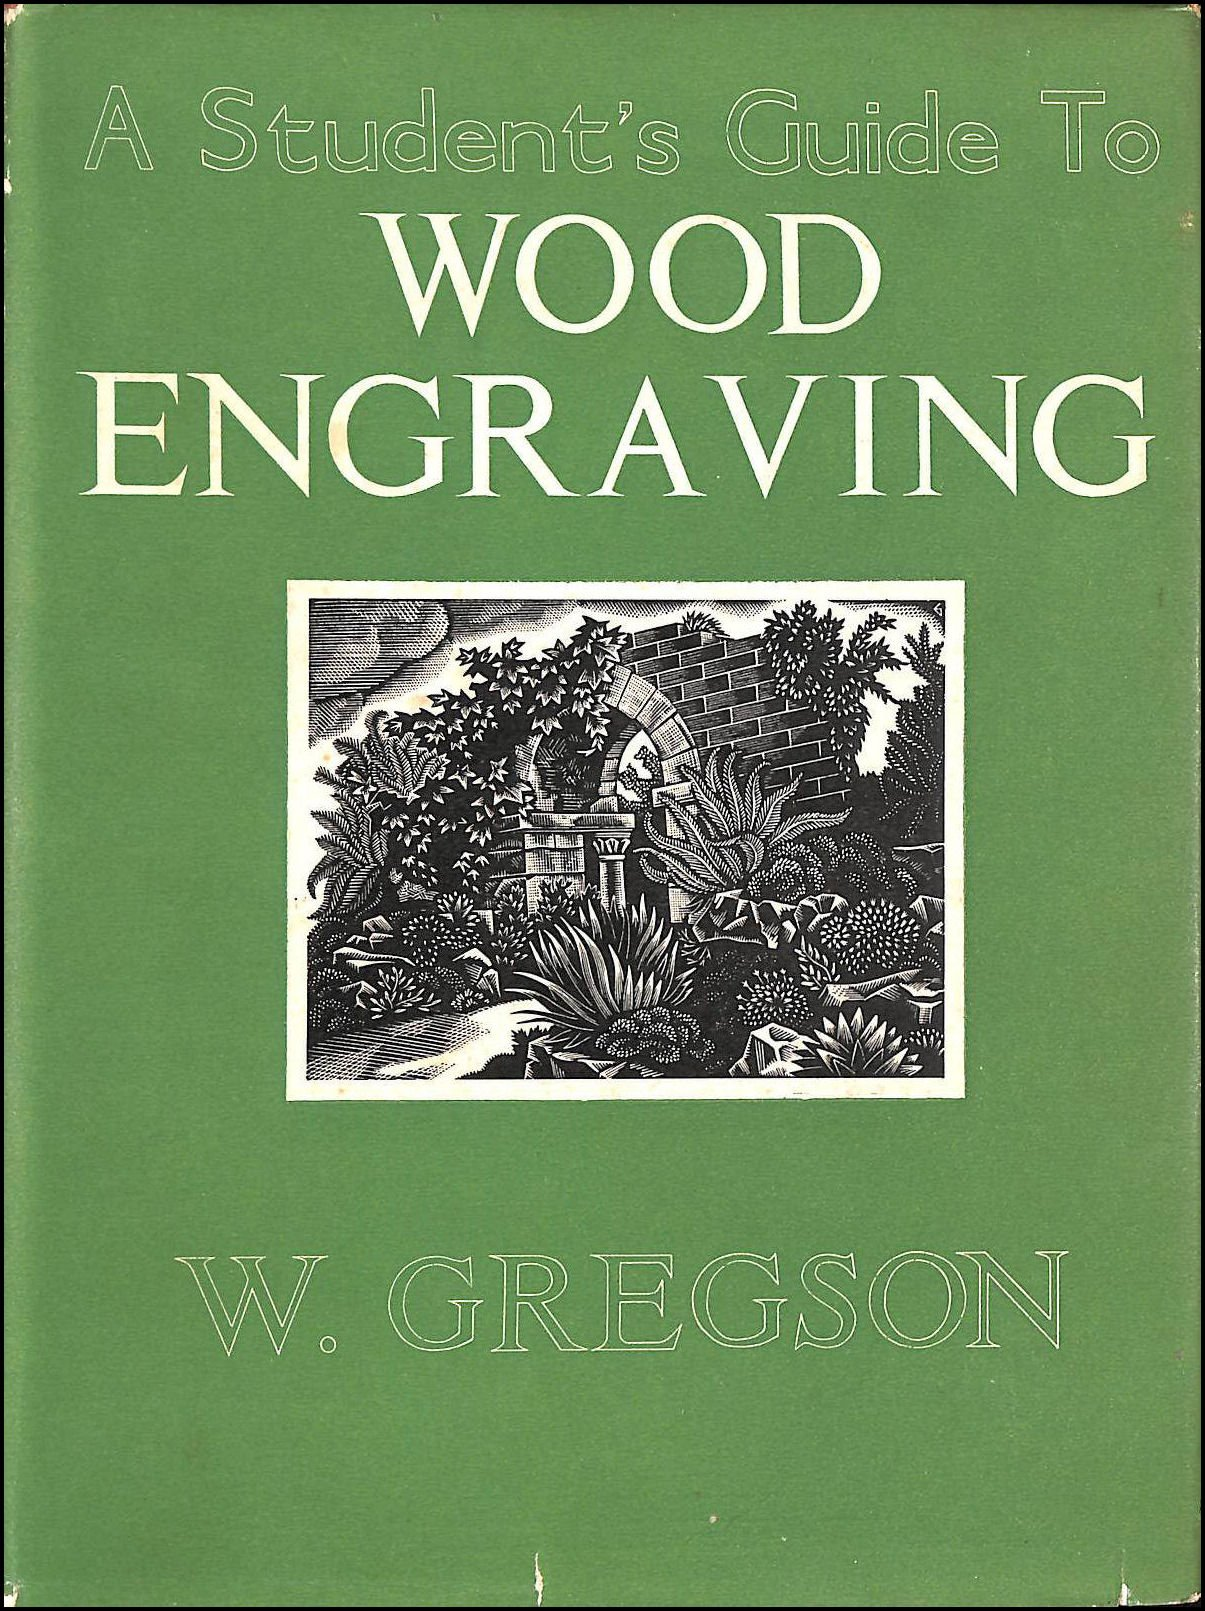 craftsman engraver manual